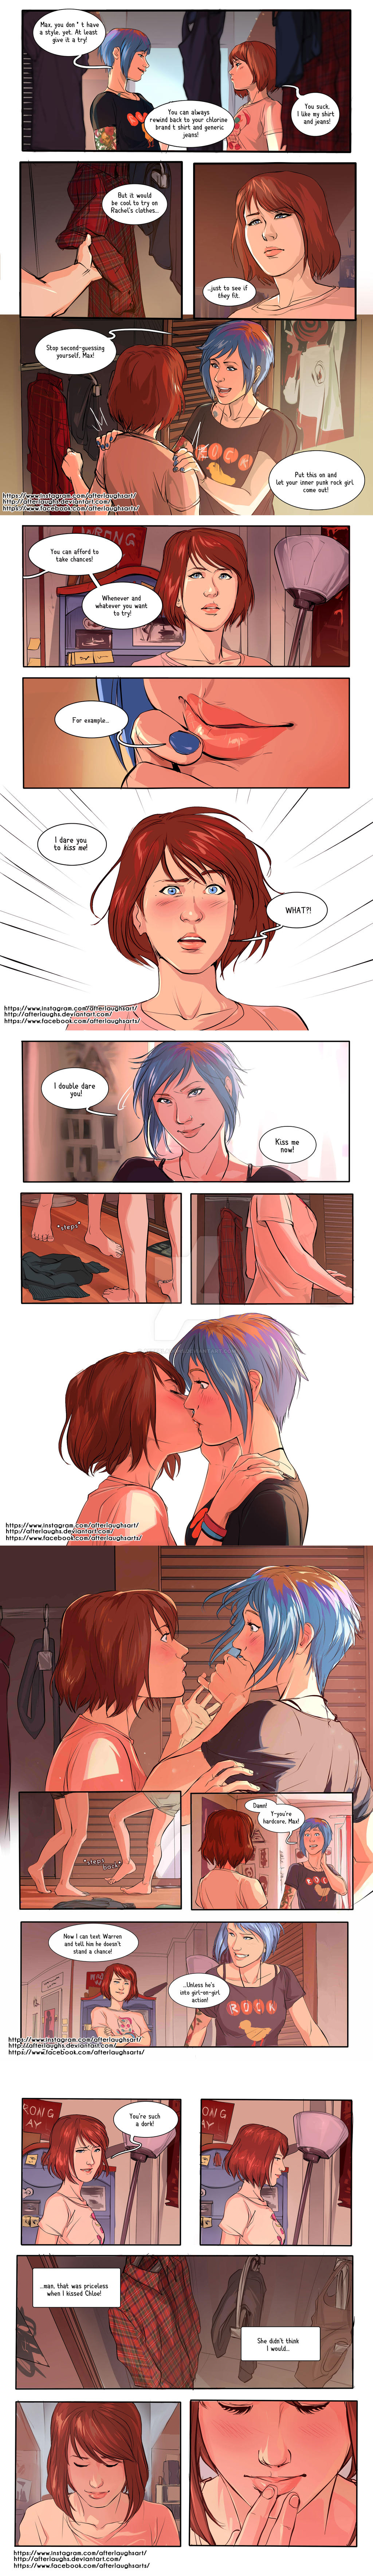 Chloe x Max - I Dare You to Kiss me by Afterlaughs